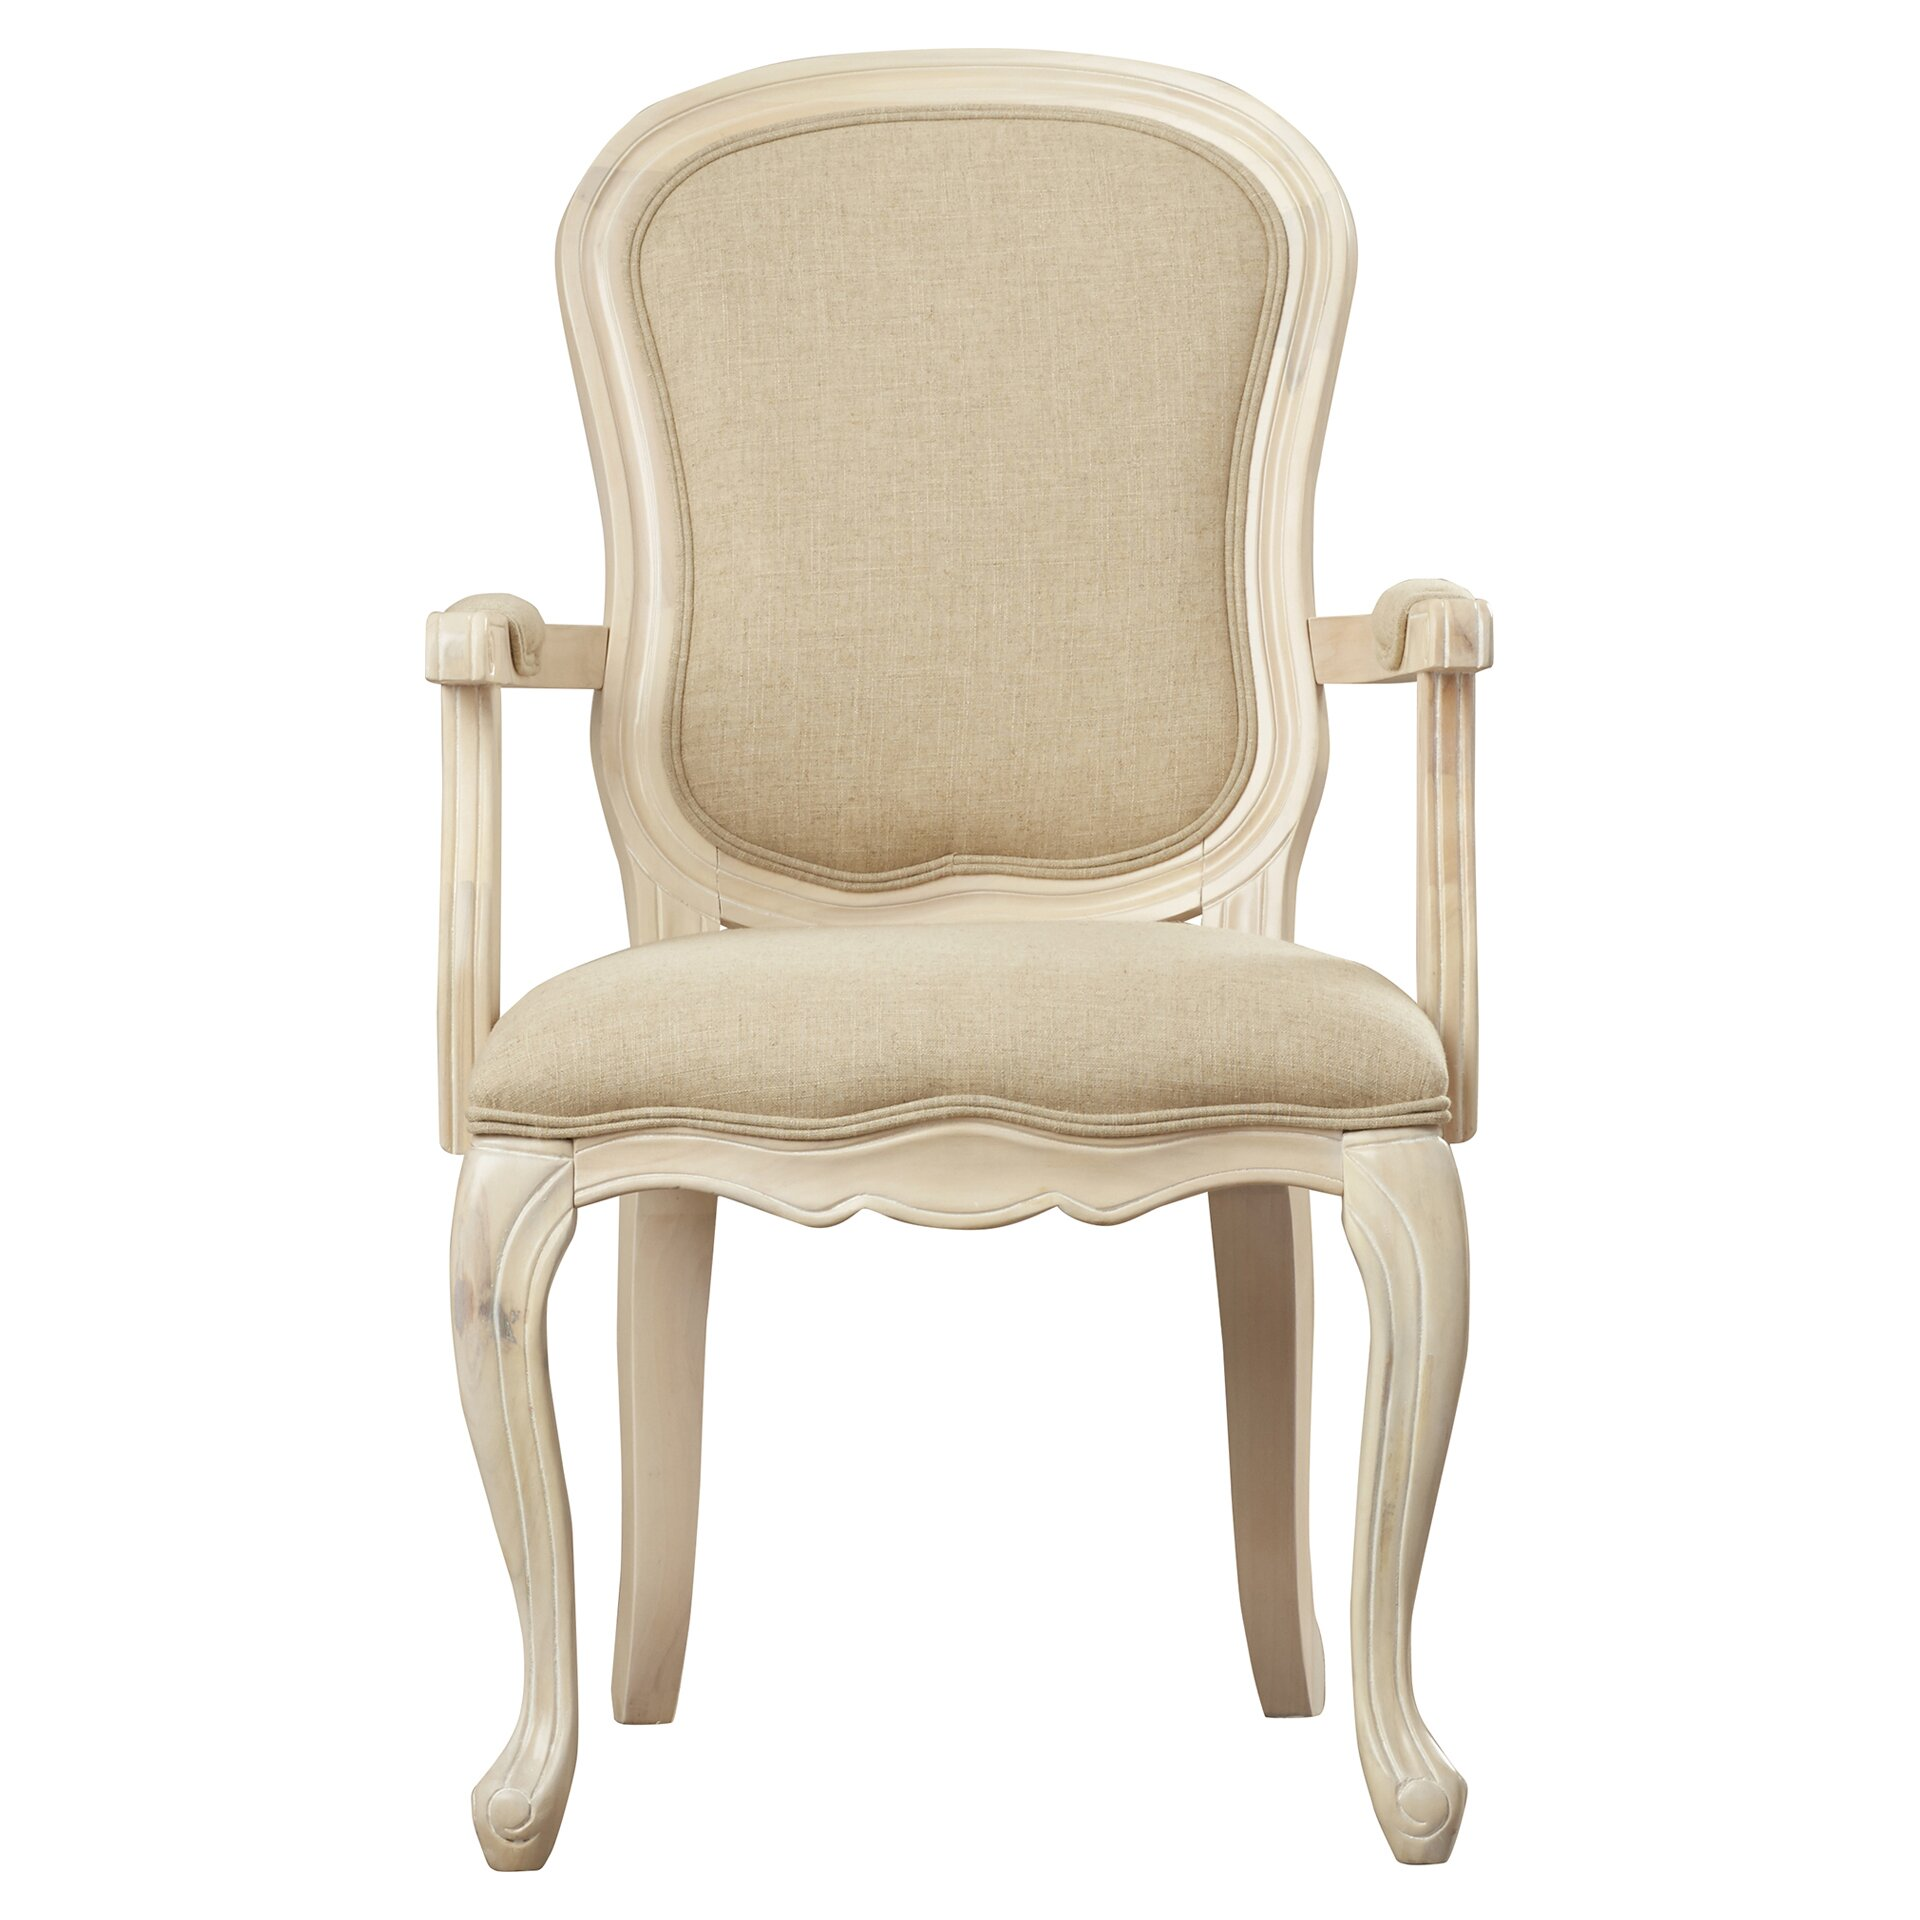 Lark Manor Saint Quentin Accent Arm Chair amp Reviews Wayfair : Saint Quentin Accent Arm Chair LARK1980 from www.wayfair.com size 1920 x 1920 jpeg 352kB